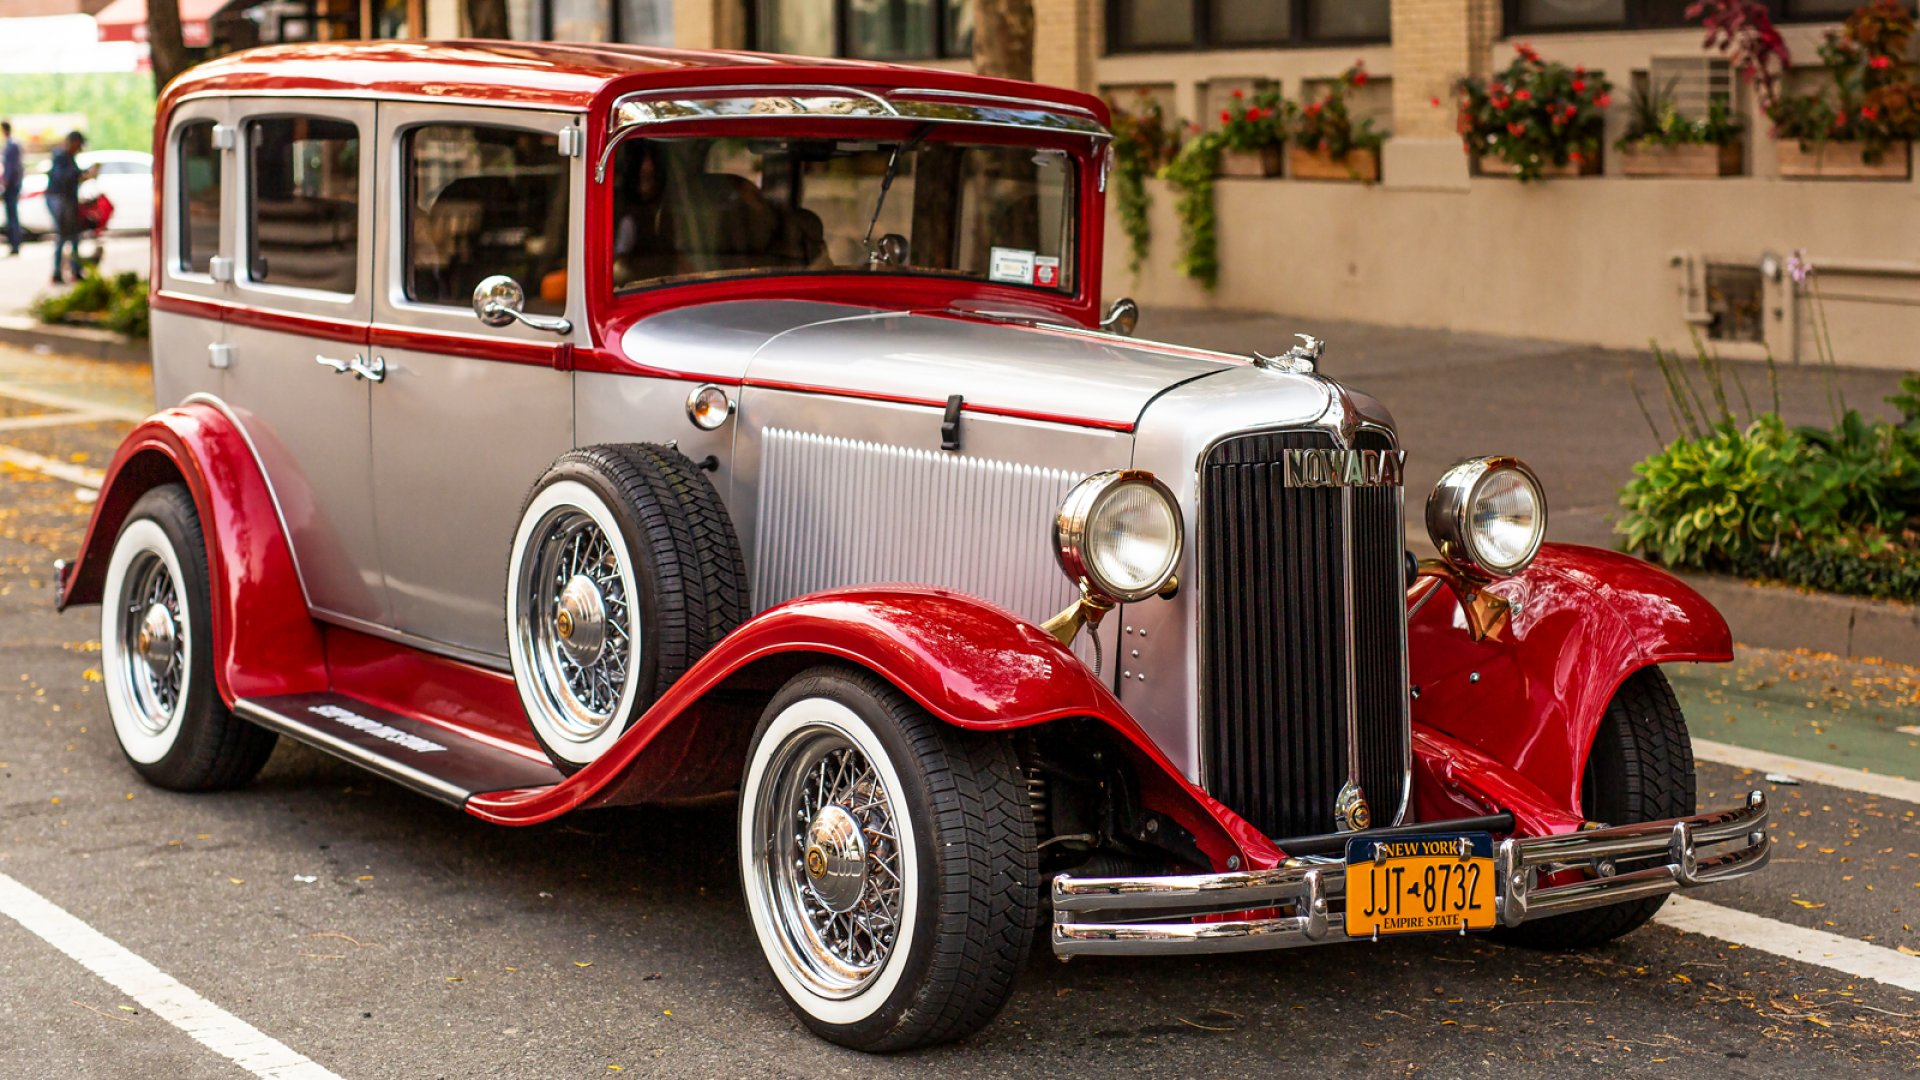 Nowaday's 1932 Chrysler Imperial.